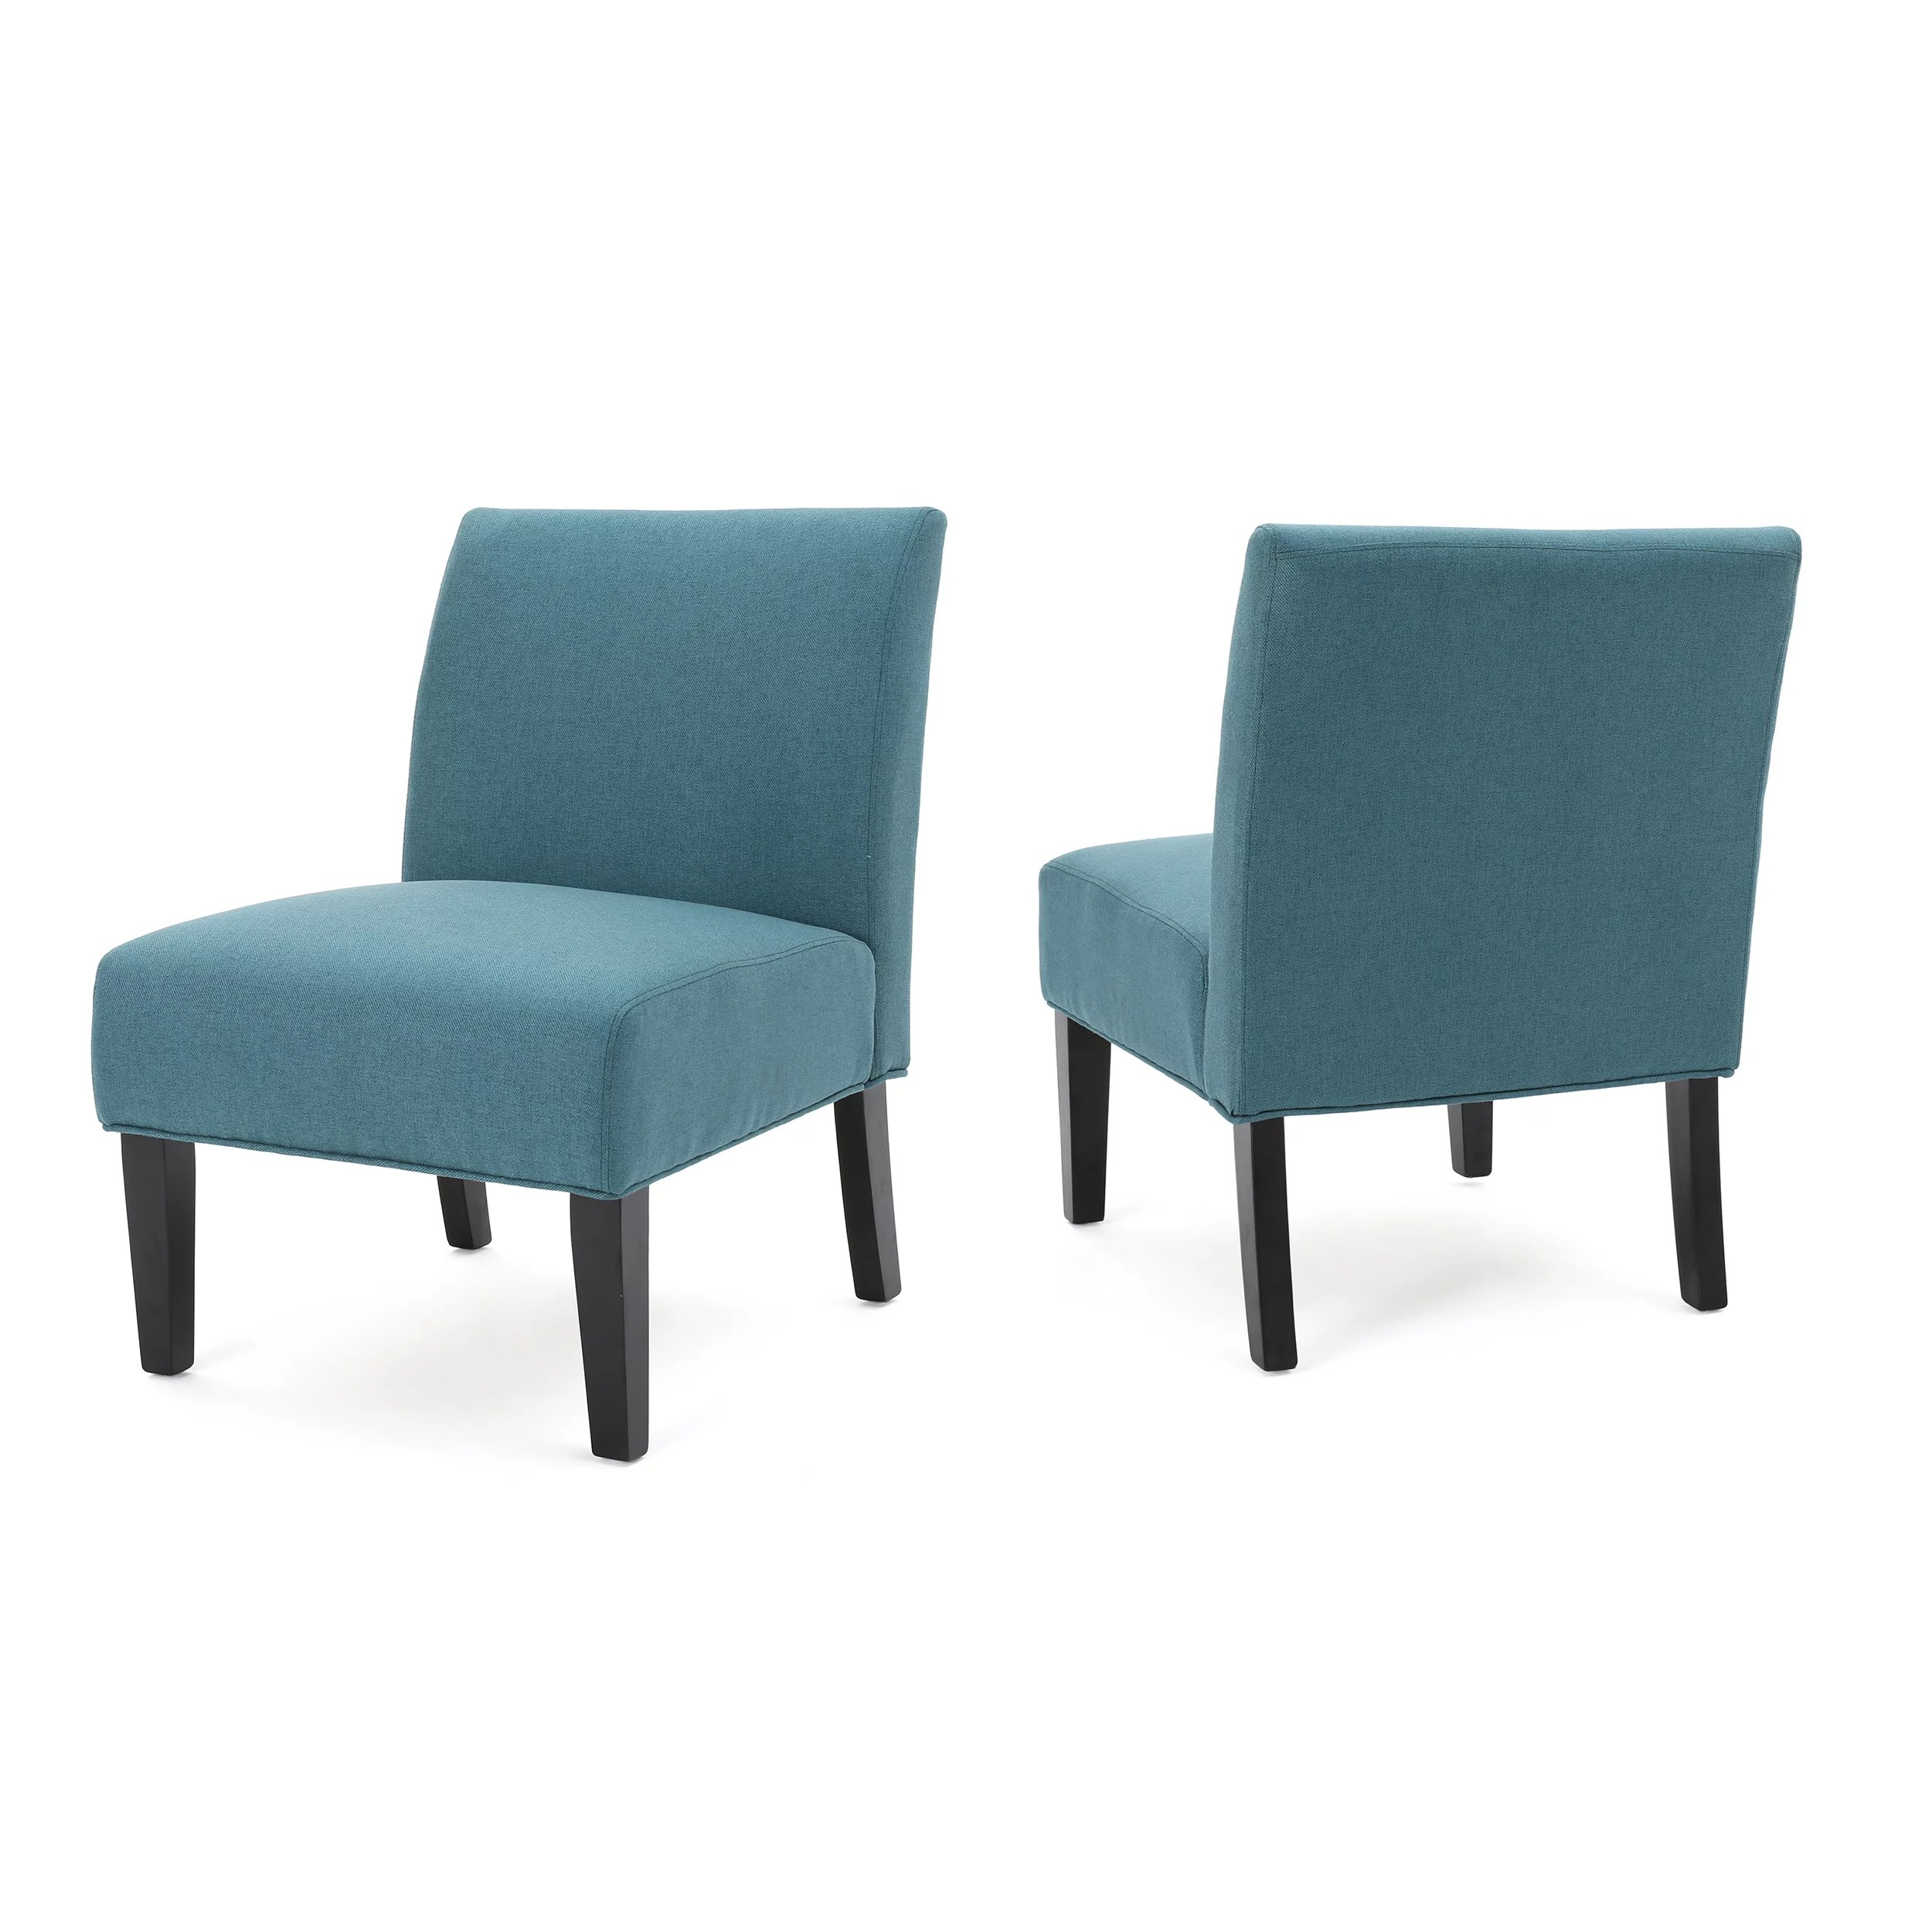 dark teal accent chair space saver table and chairs kendal fabric set of 2 walmart com